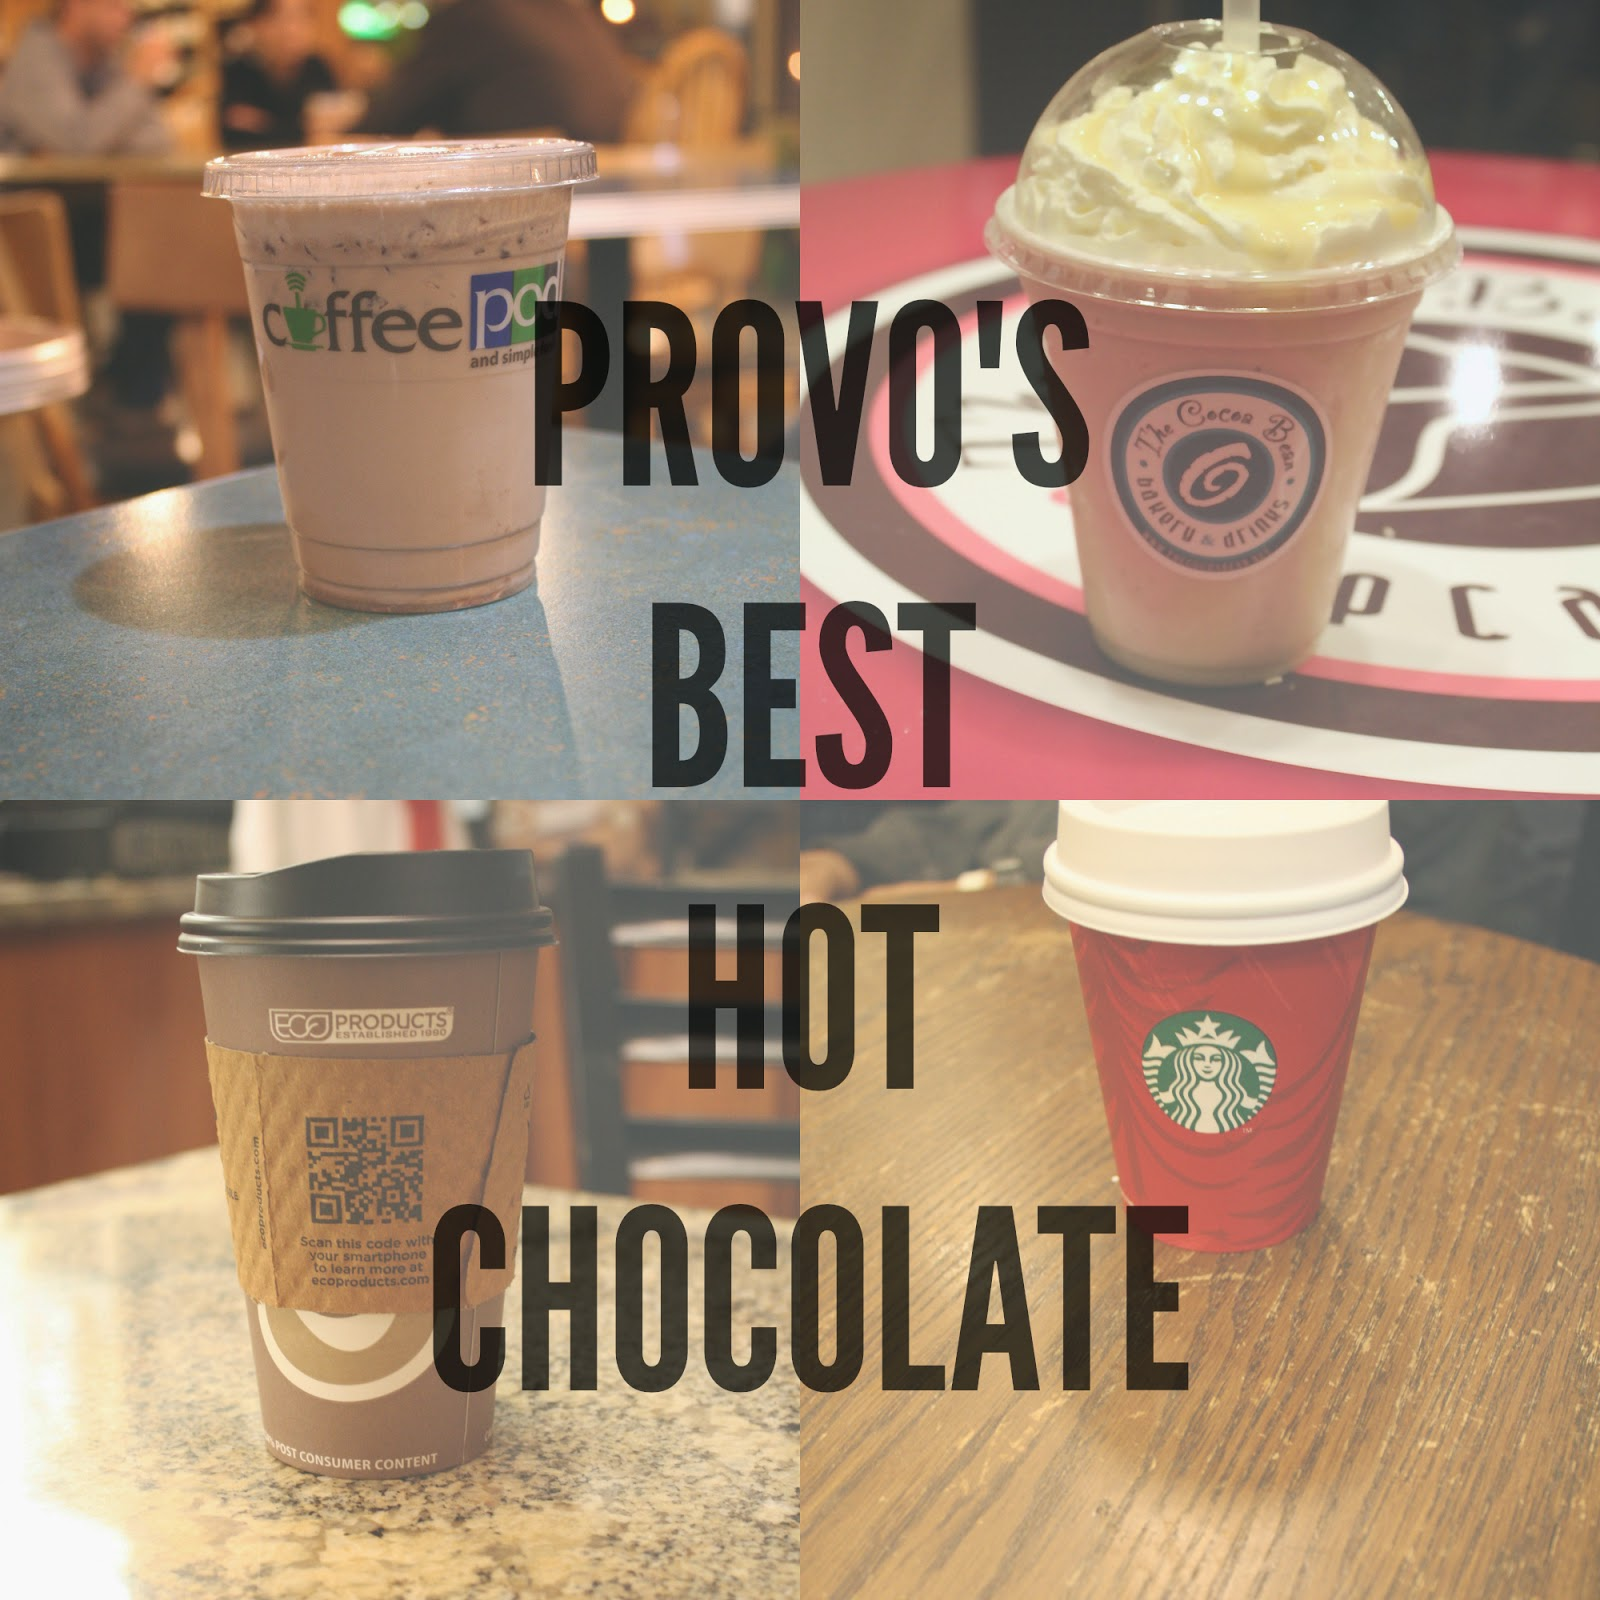 pocket of blossoms: provo's best hot chocolate